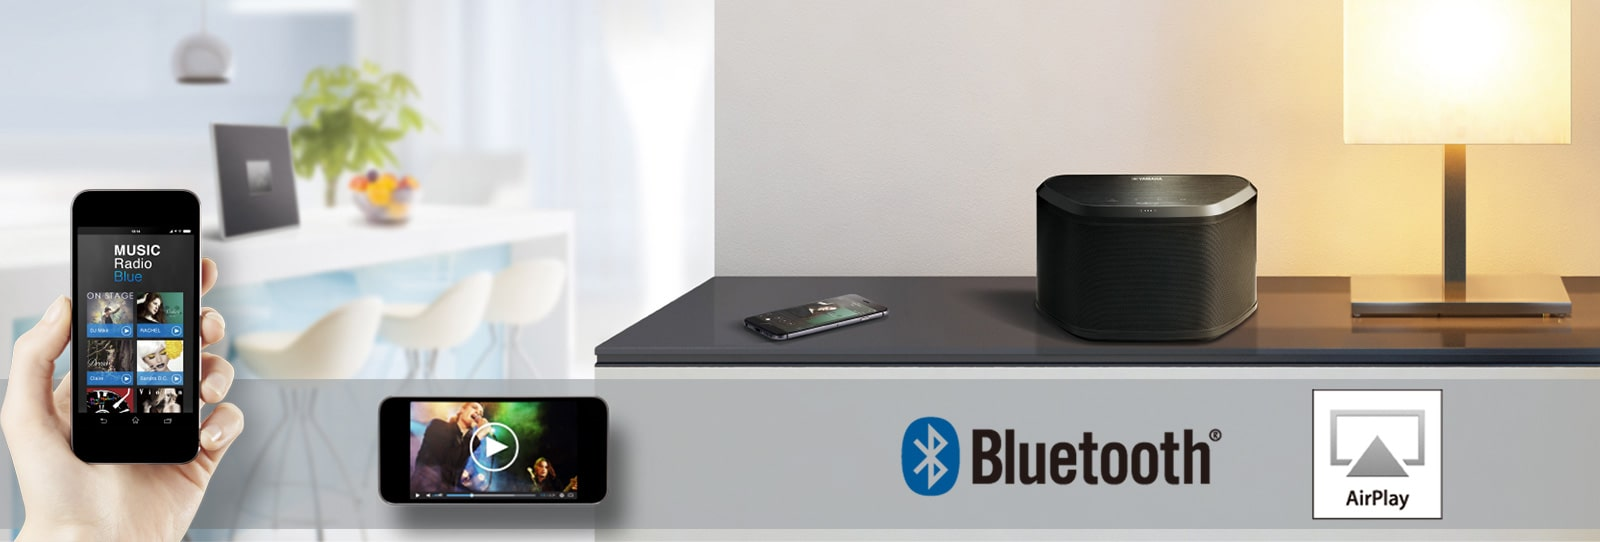 Yamaha MusicCast : Bluetooth & AirPlay